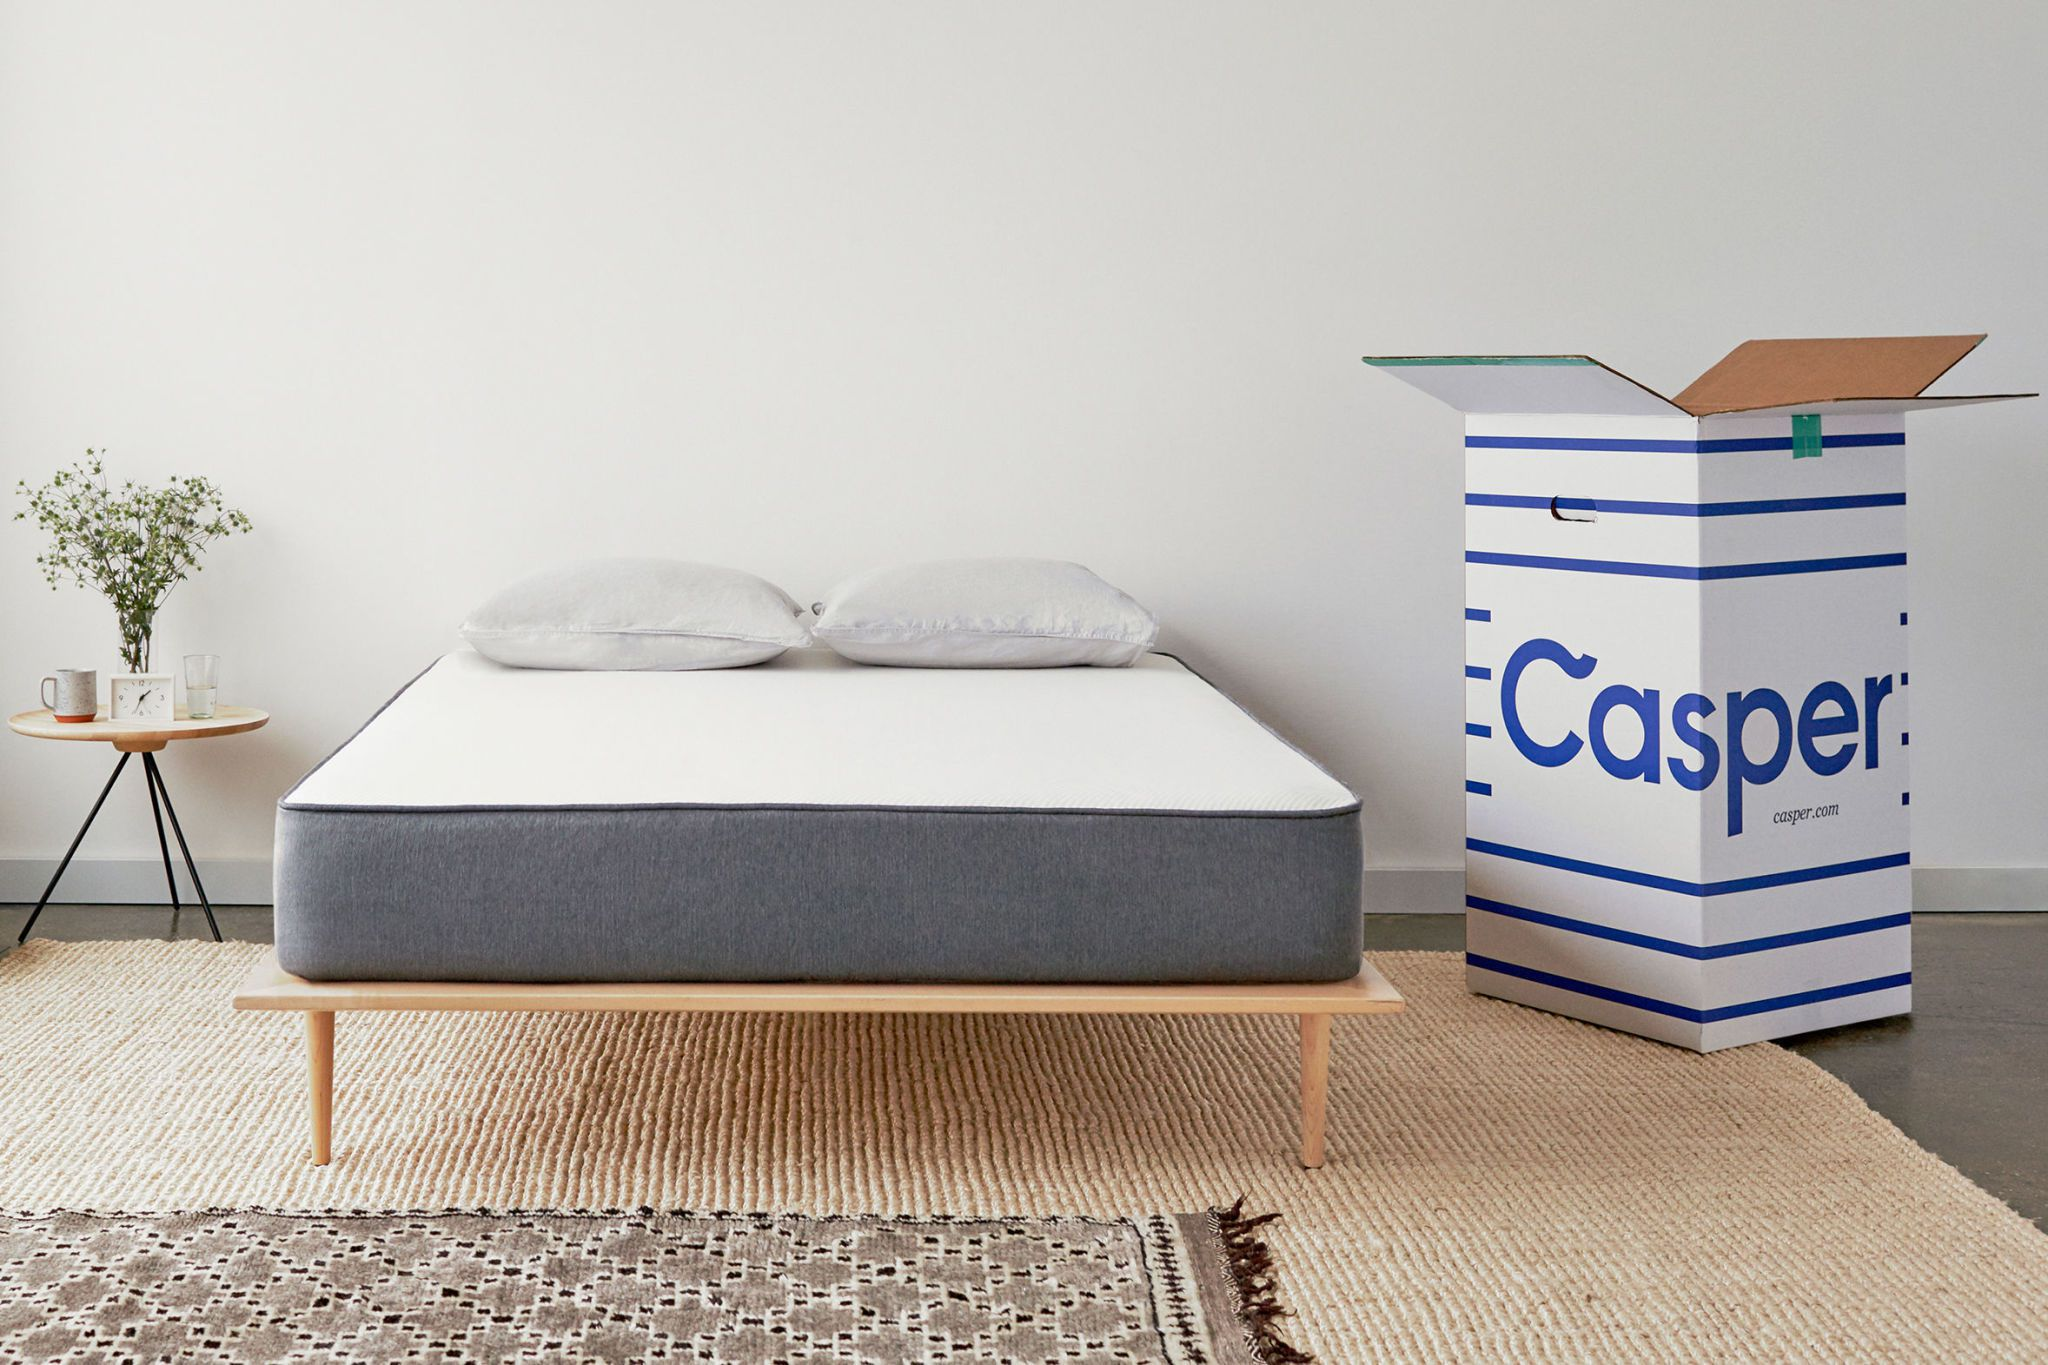 Casper Mattress Review and Buying Guide by www.snoremagazine.com